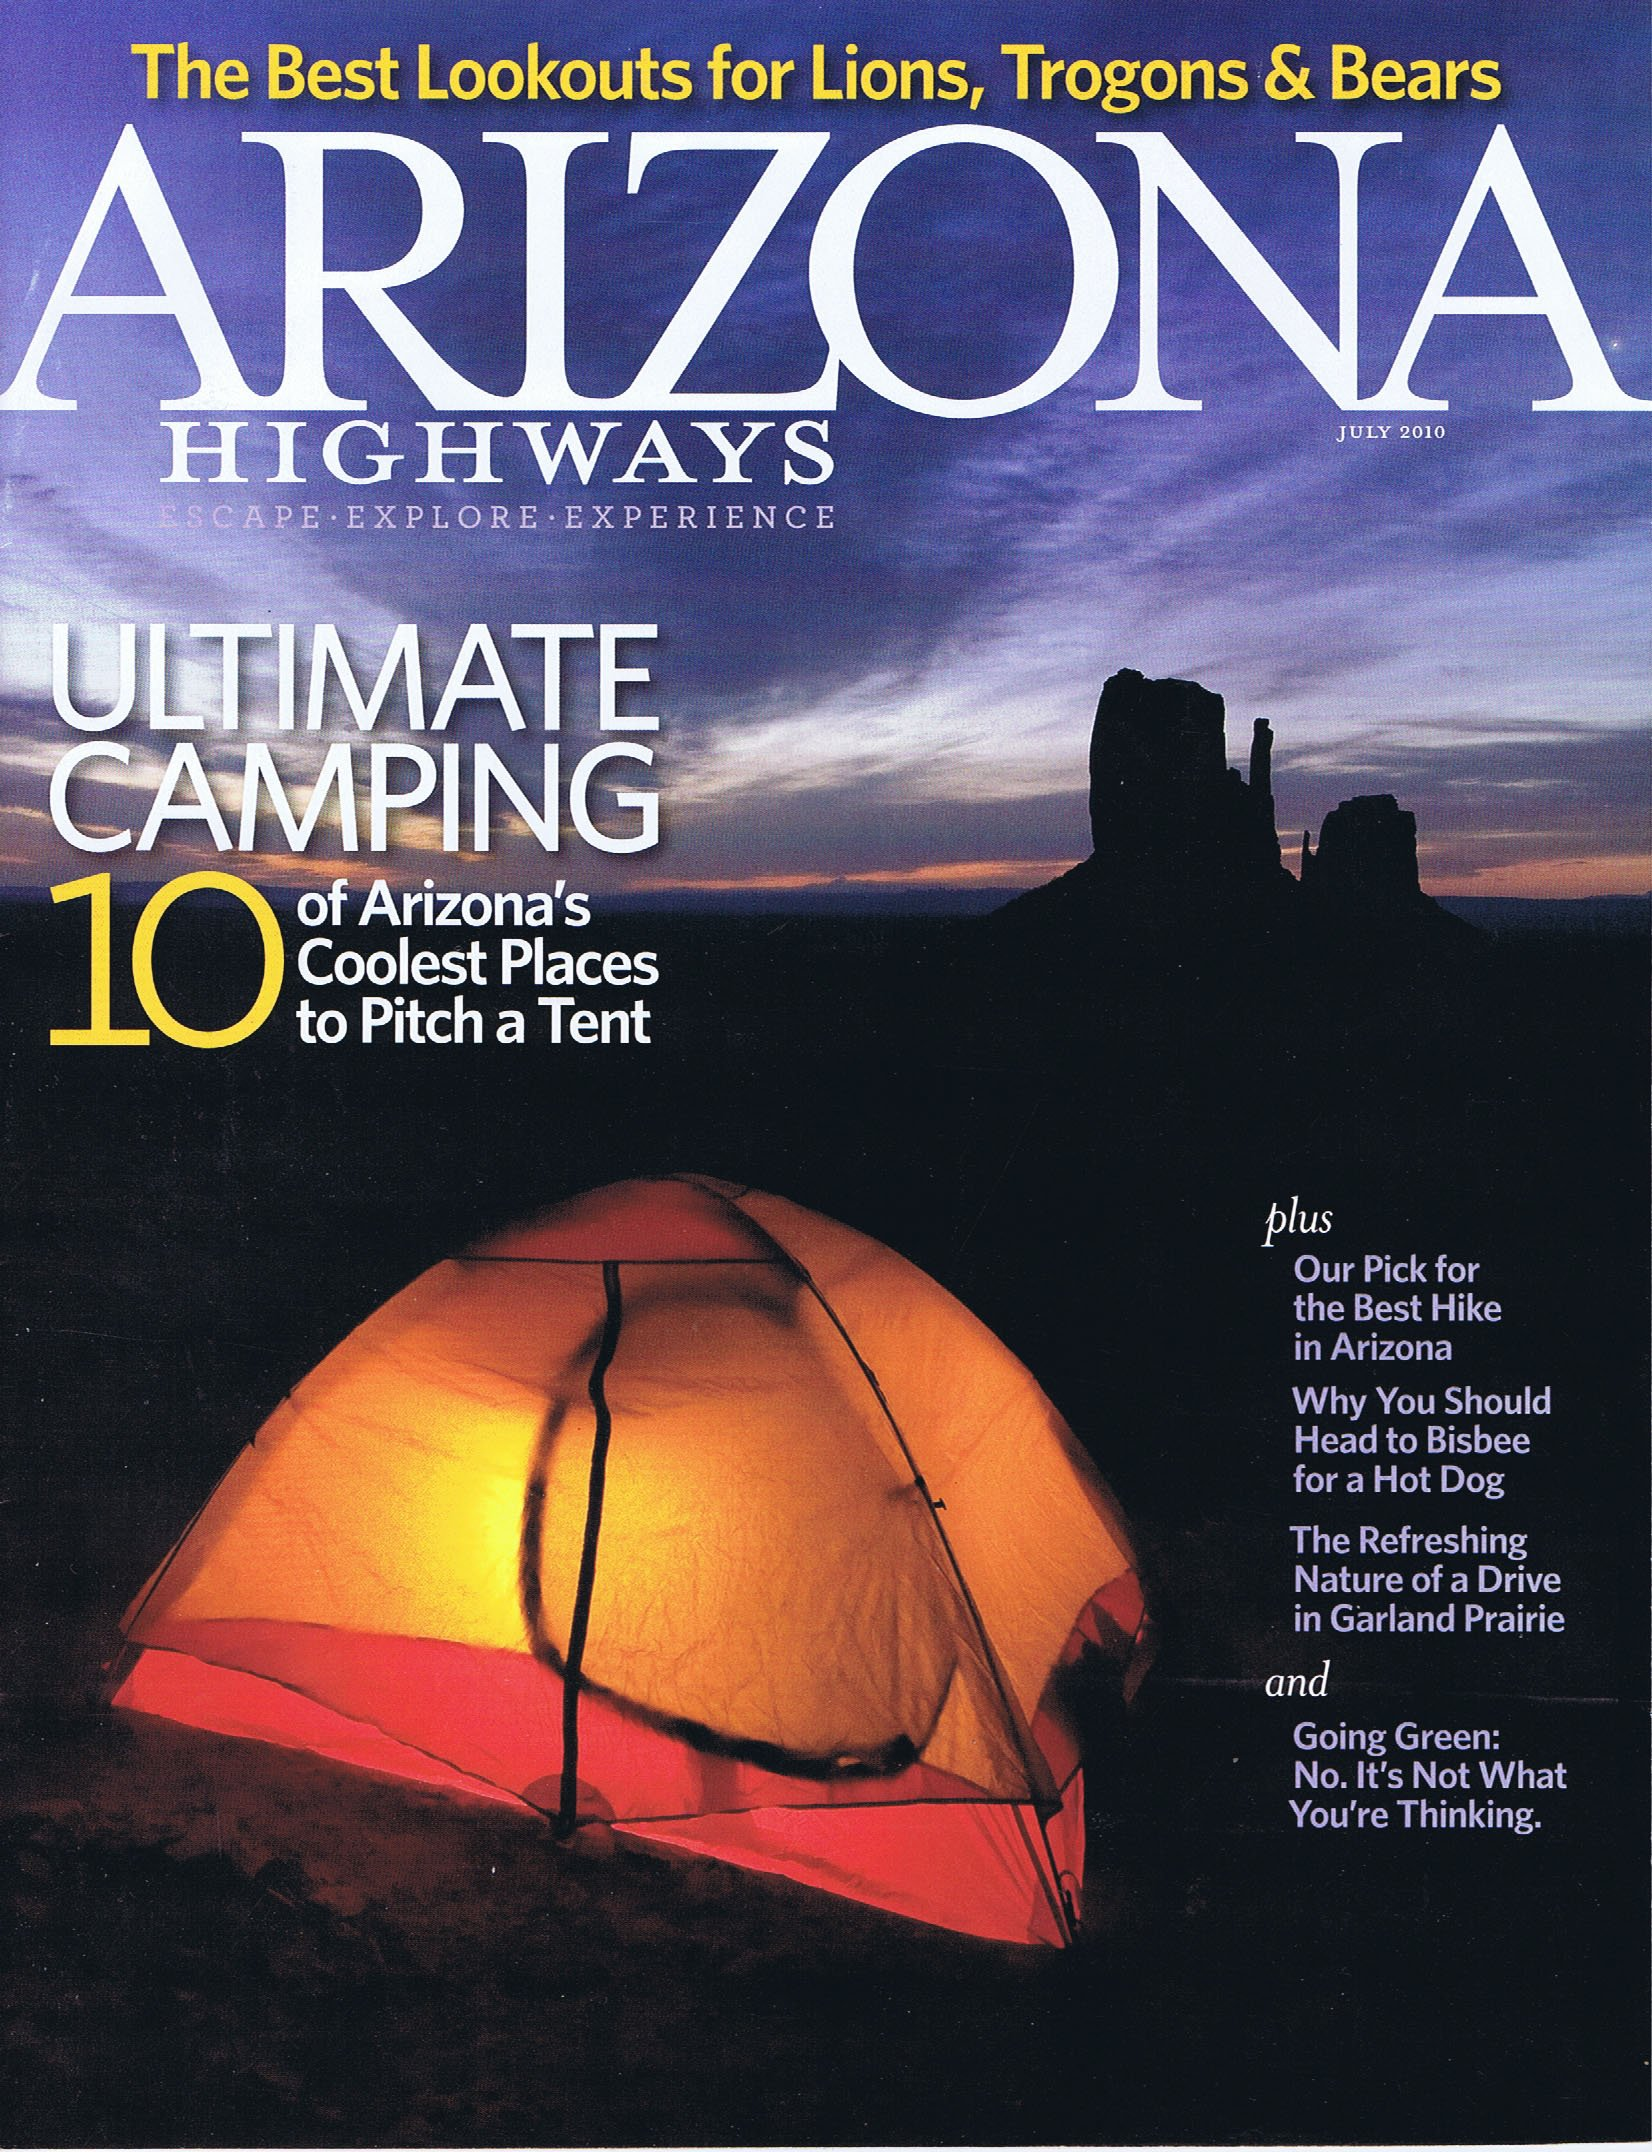 Download Arizona Highways July 2010 (Ultimate Camping 10 of Arizona's Coolest Places to Pitch a Tent, The Best Lookouts for Lions, Trogons & Bears) ebook